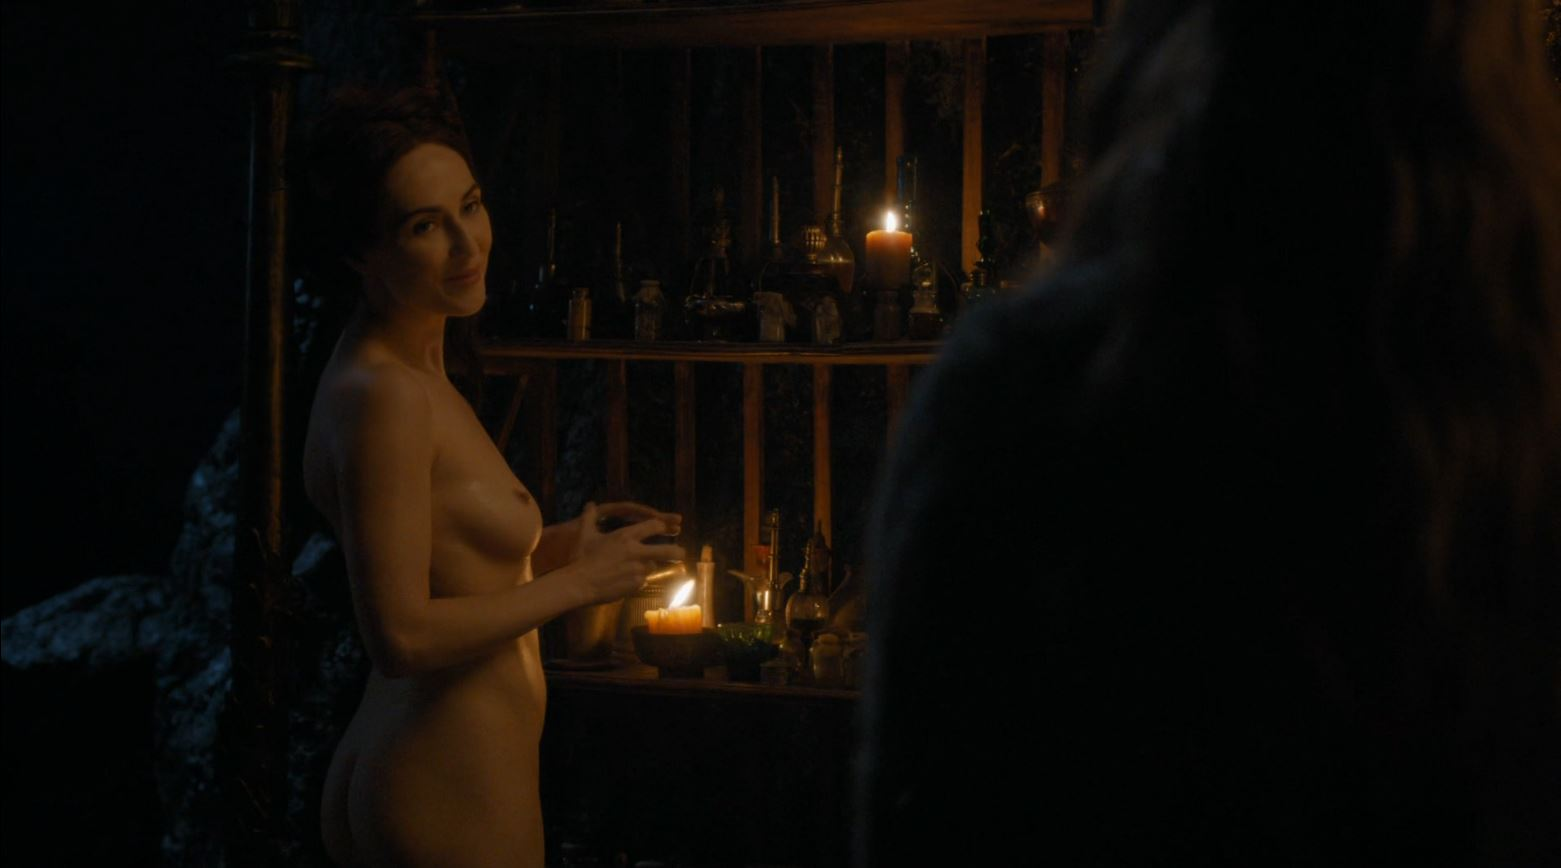 Game Of Thrones S4Ep7 Mockingbird Review - Carice van Houten nude as Melisandre